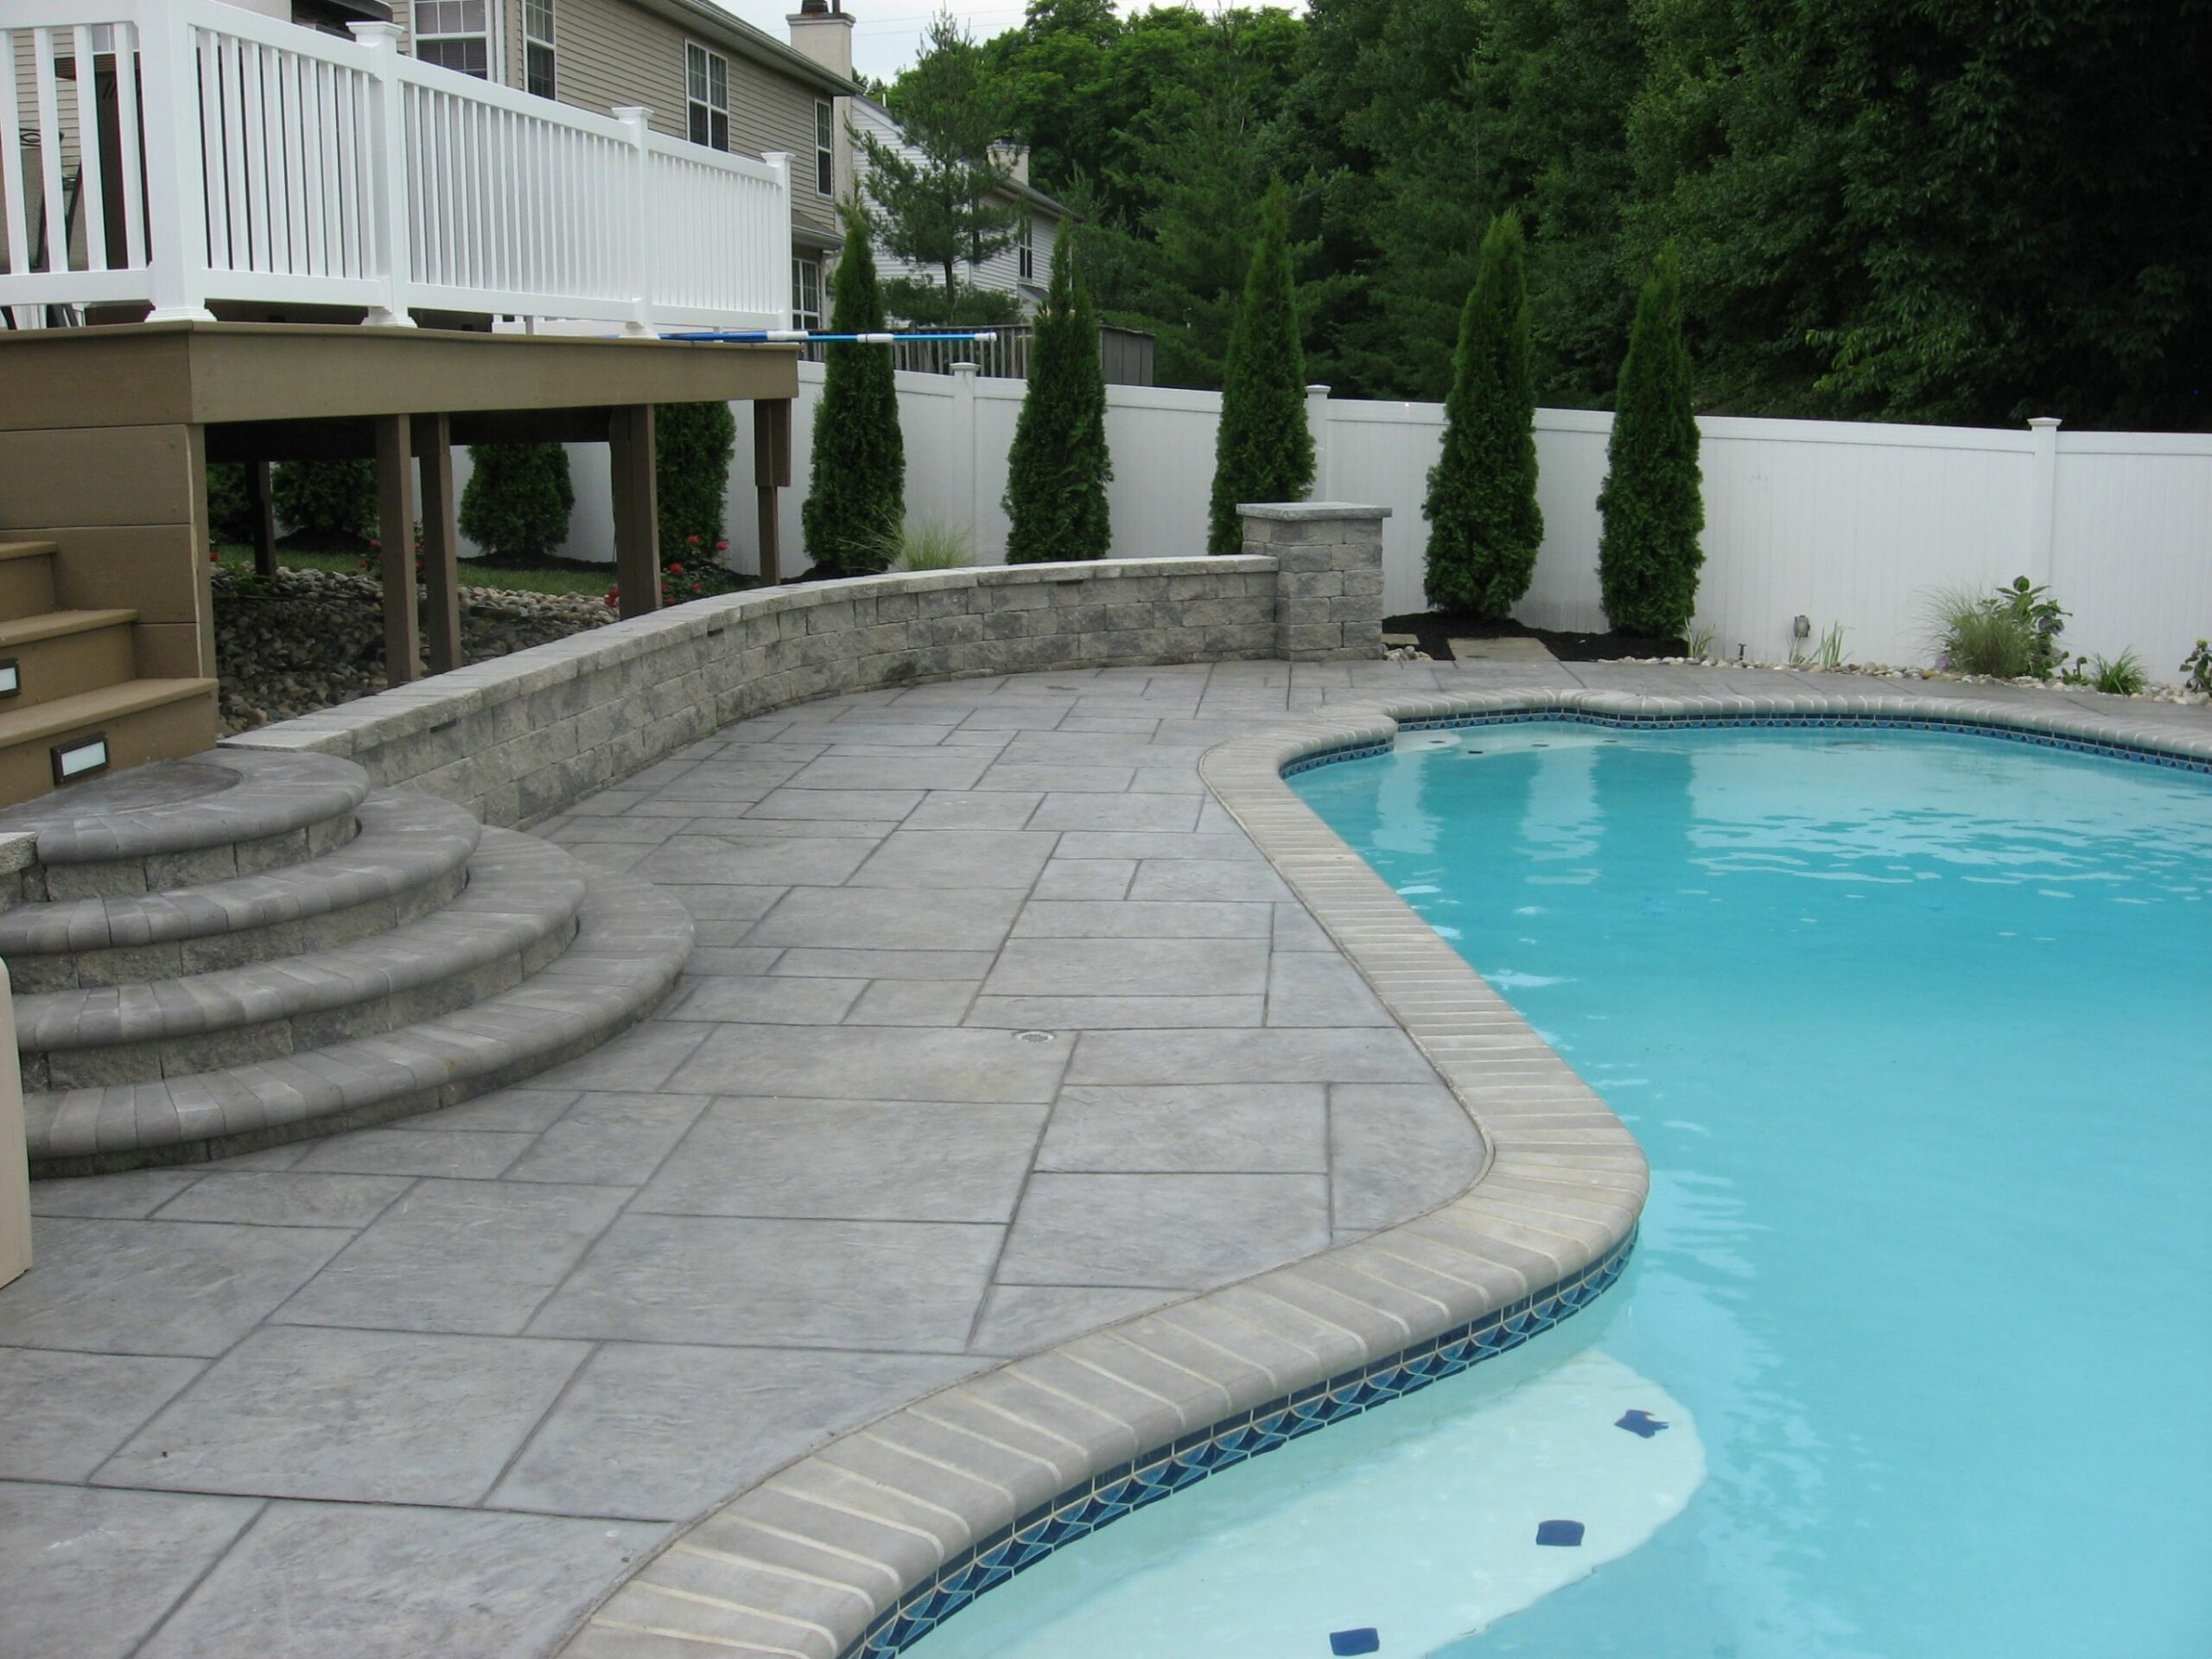 Stamped Concrete Pool Patio Paver Deck Contractors Driveways Home ..